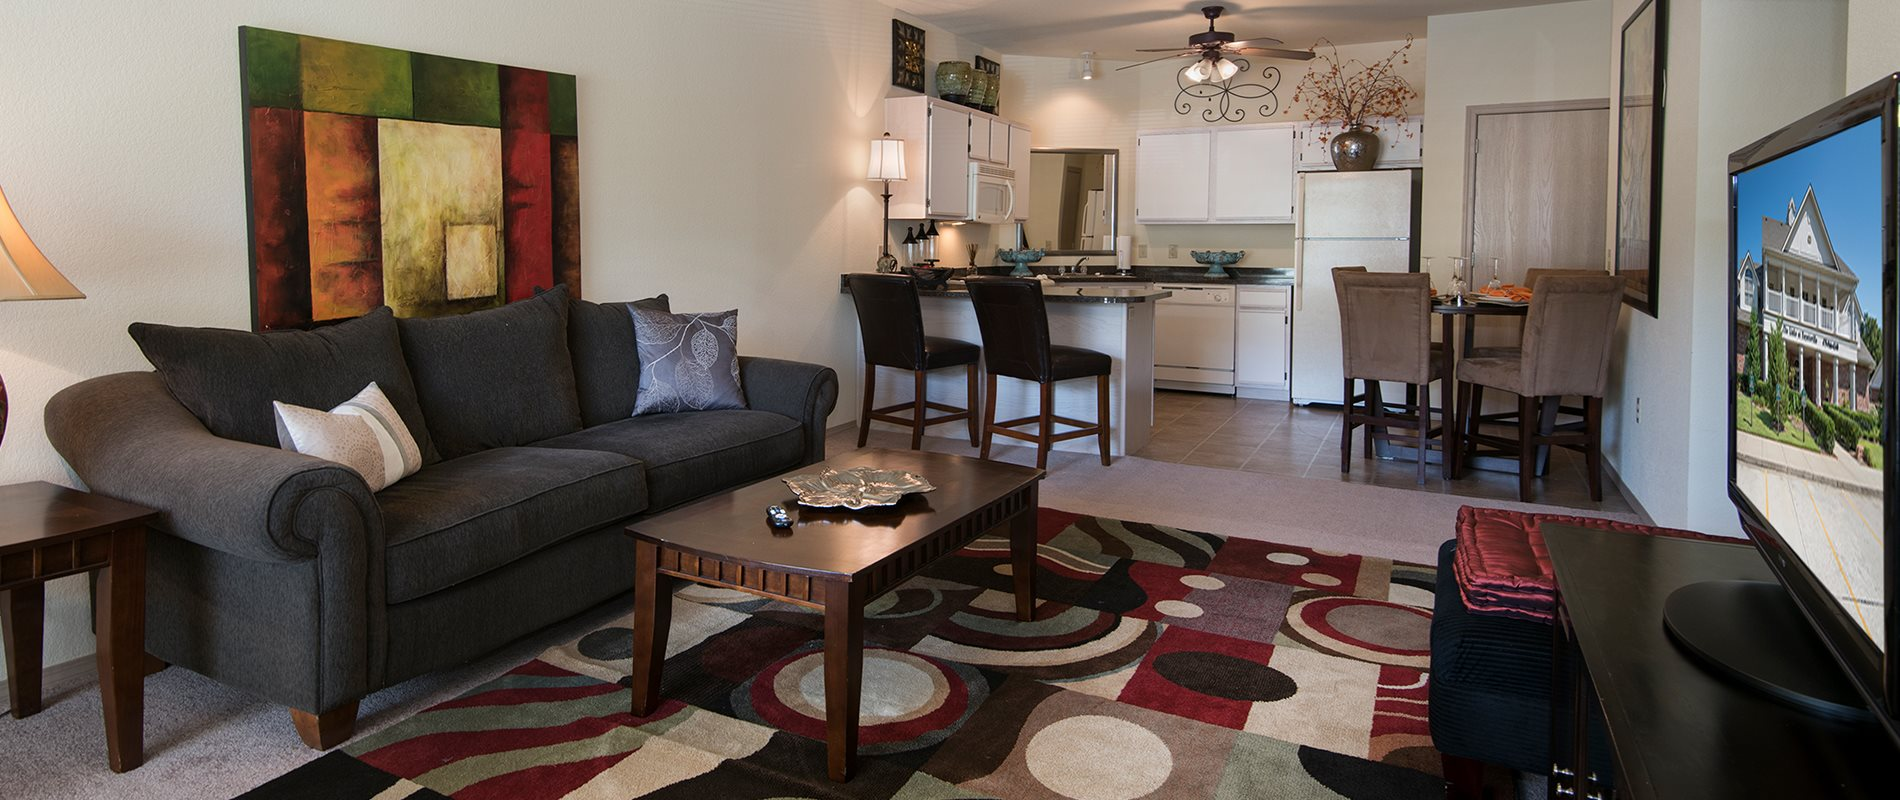 The Links At Fayetteville Apartments In Fayetteville Ar